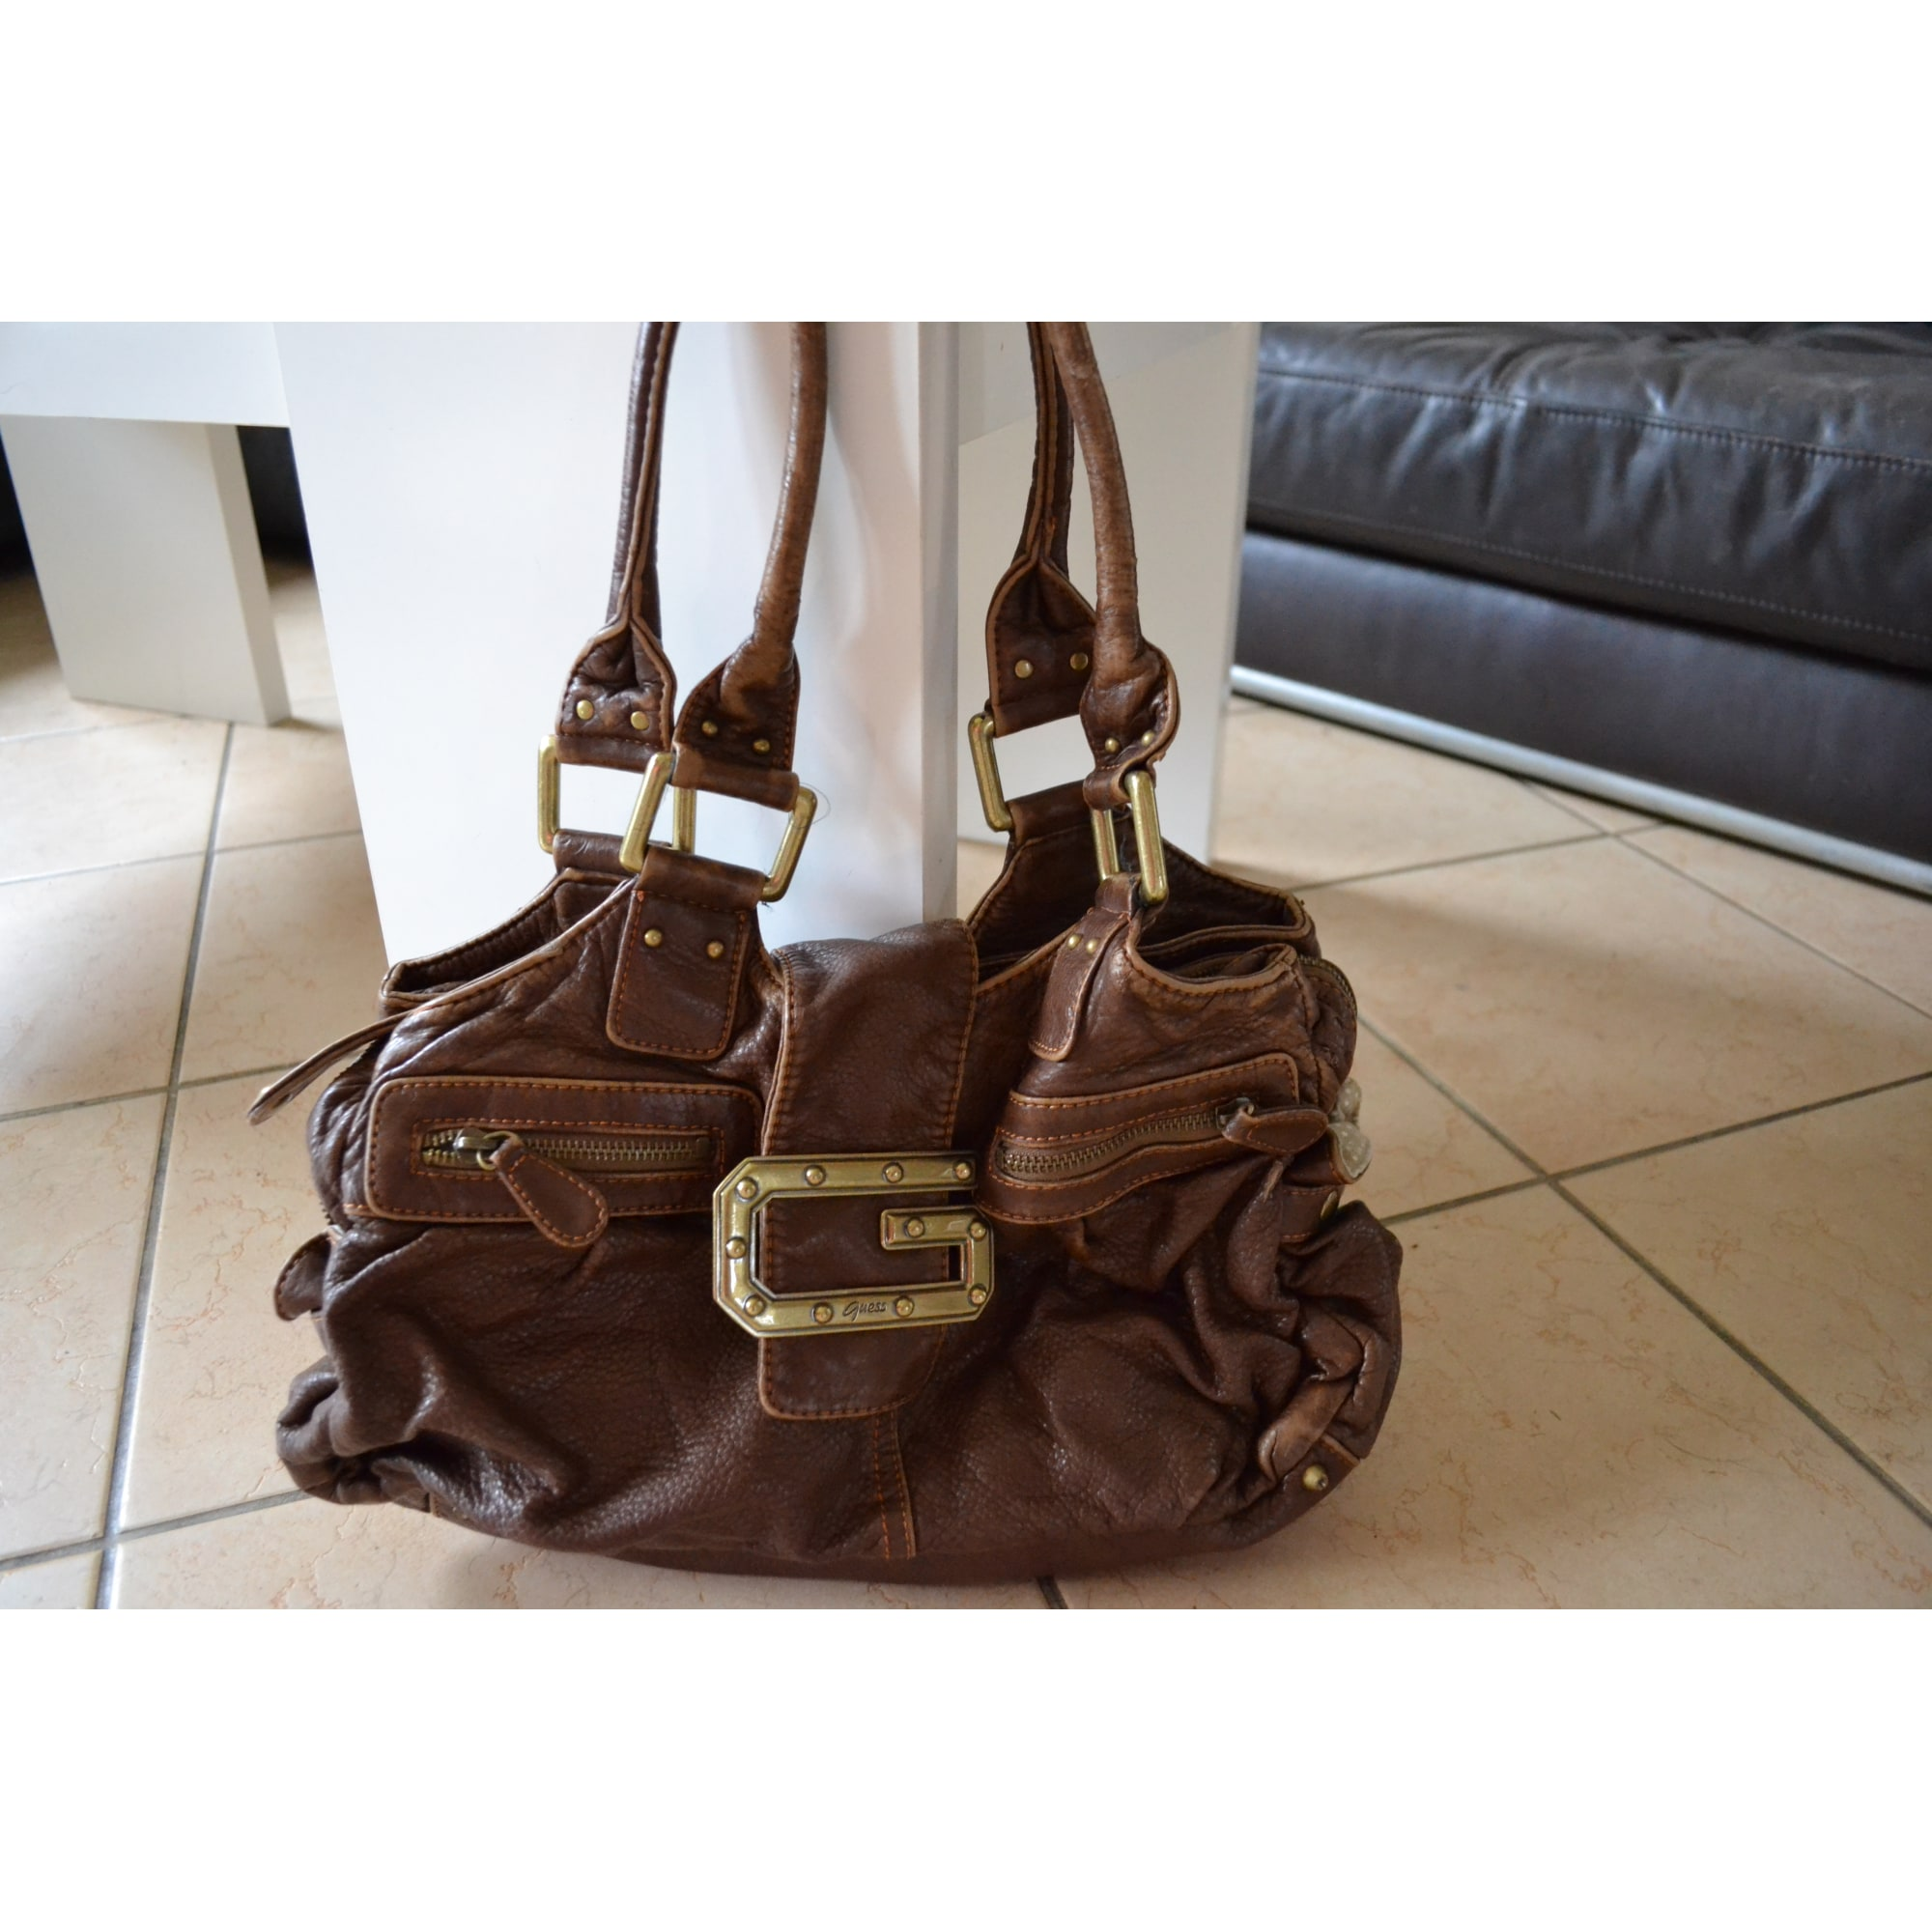 2ef4e6a44f Sac à main en cuir GUESS marron - 5641255